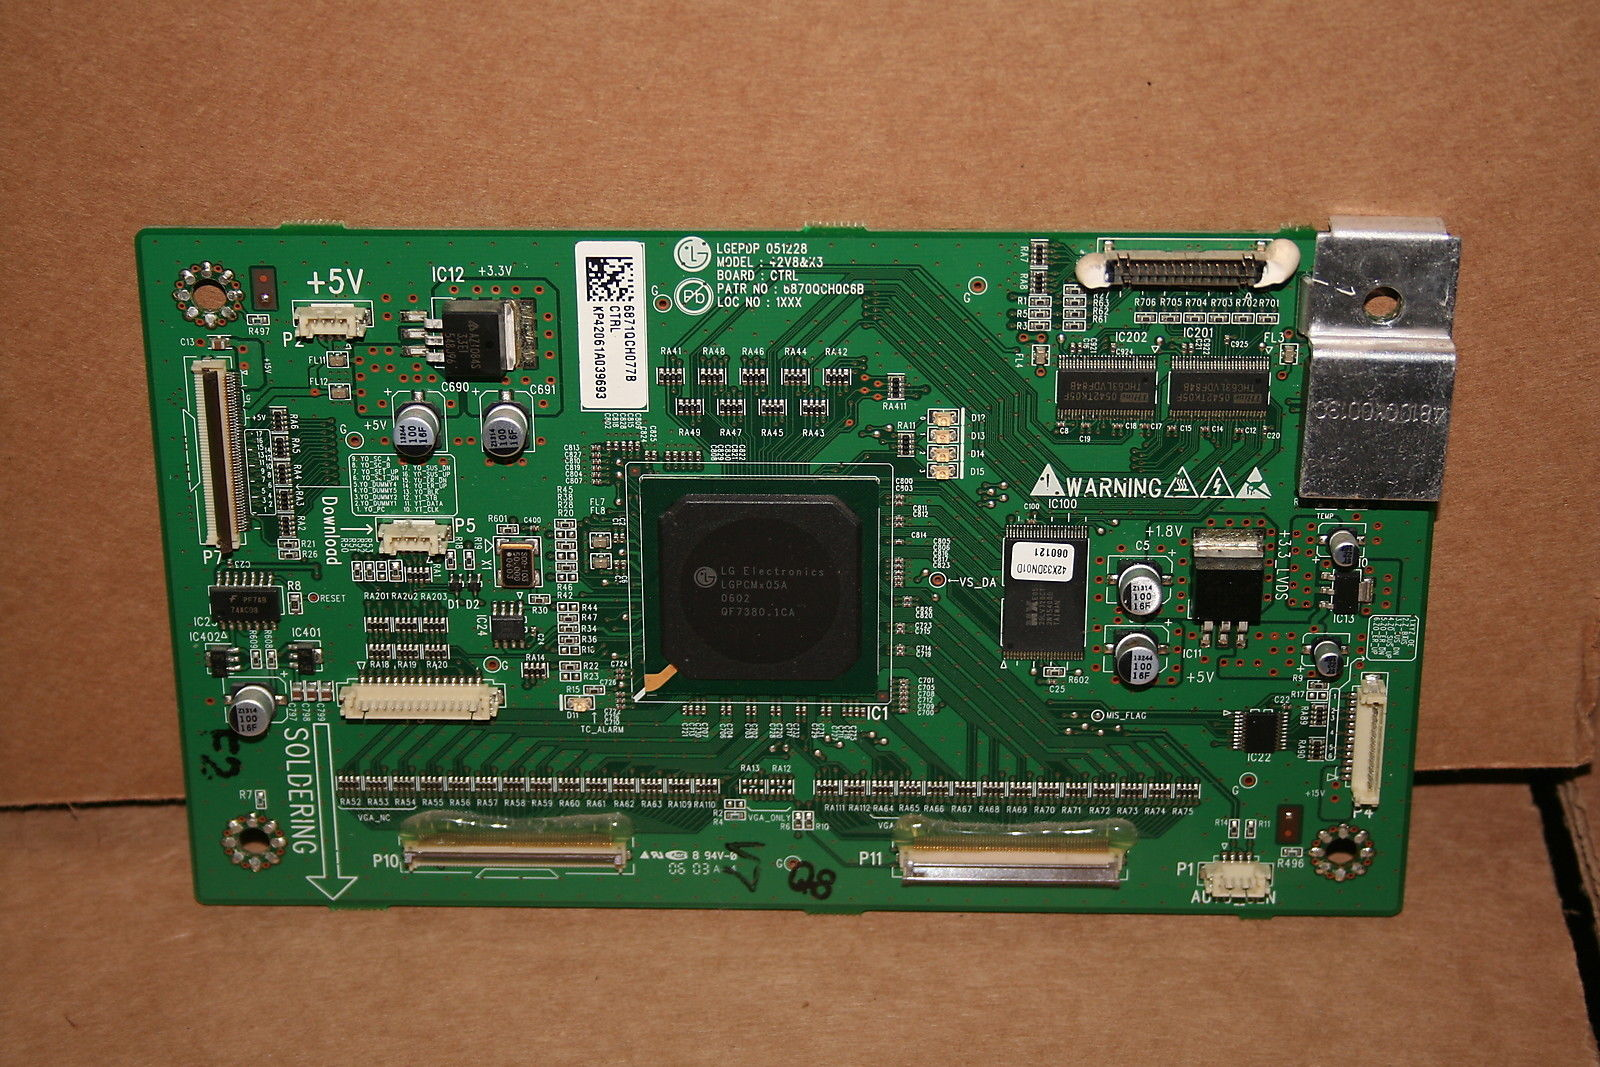 HP PL4260N CPTOH-0602 & Others Logic main board #6871QCH077B CRT